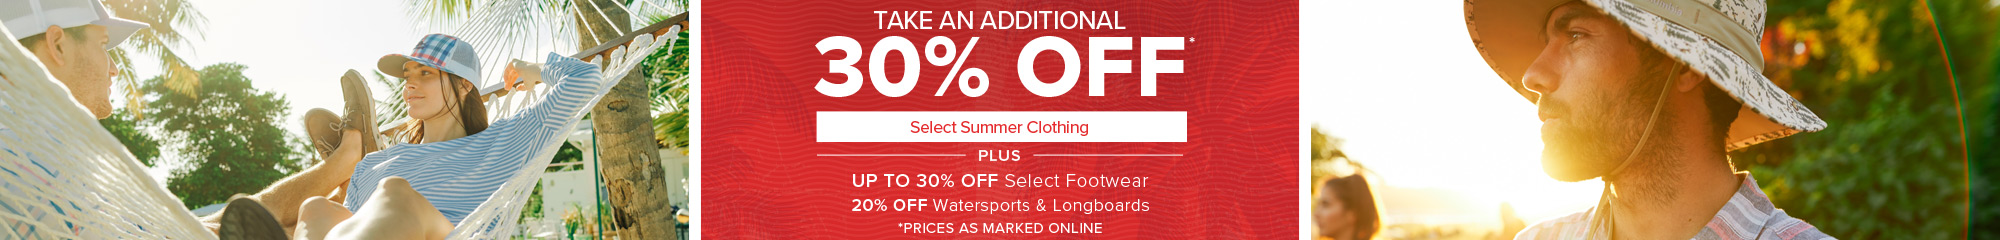 Last Days of Summer Clearance Blowout - Additional 30% Off Select Summer Apparel. Plus 30% Off Select Footwear and 20% off Watersports and Longboards